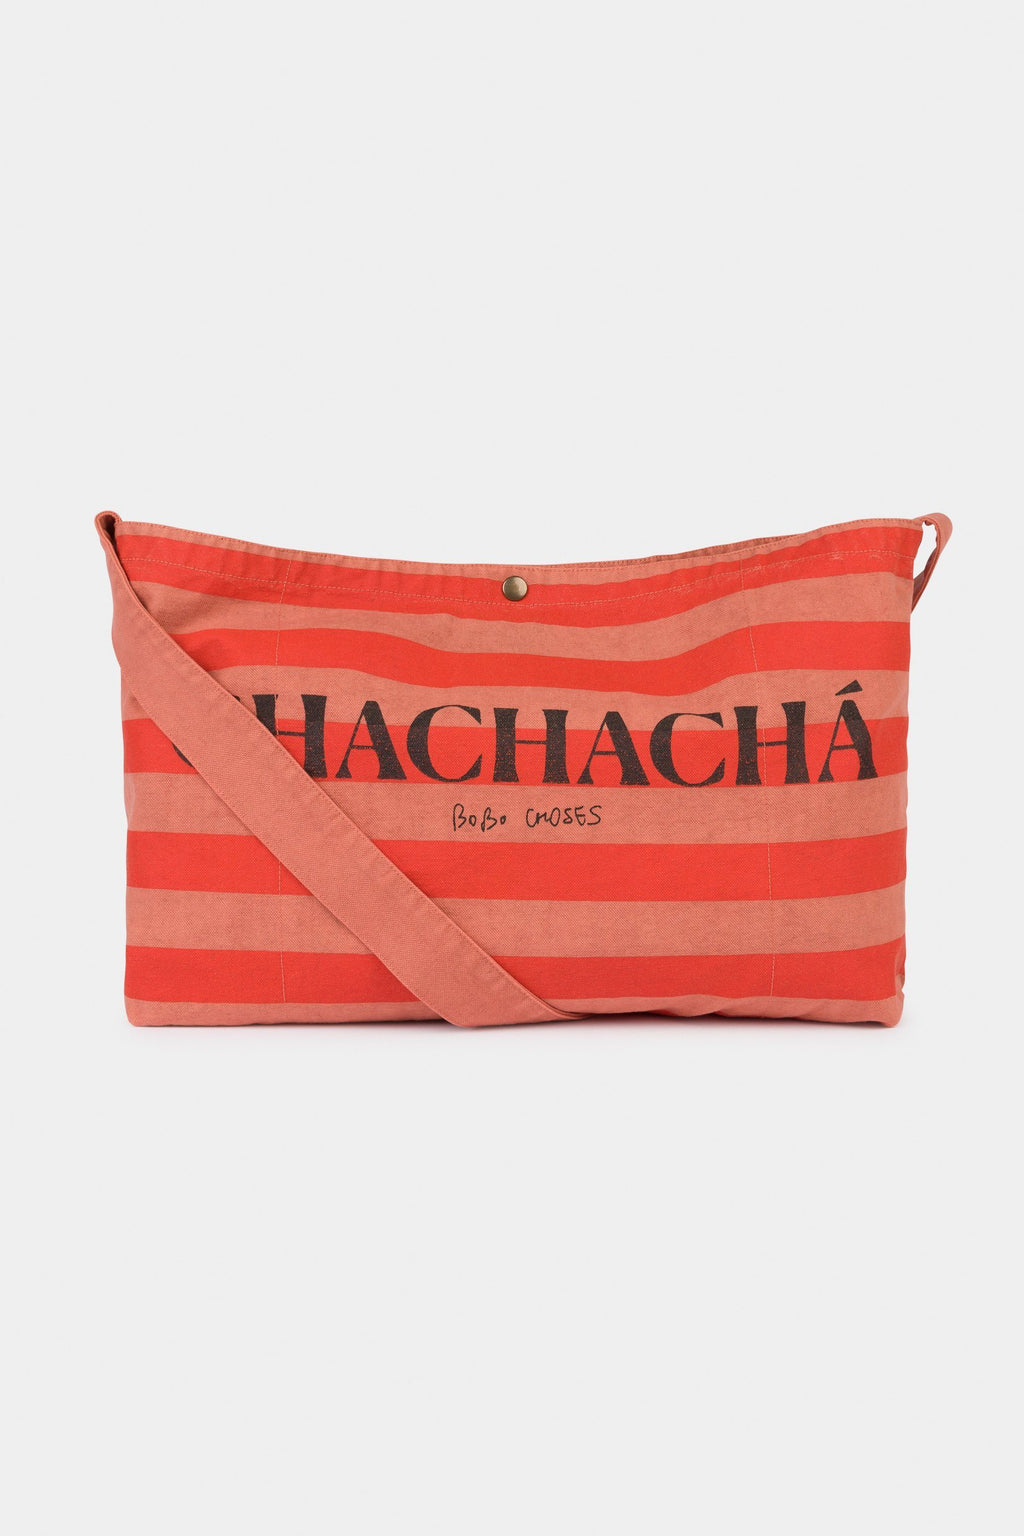 Chachacha tote bag Bobo Choses bag Bobo Choses